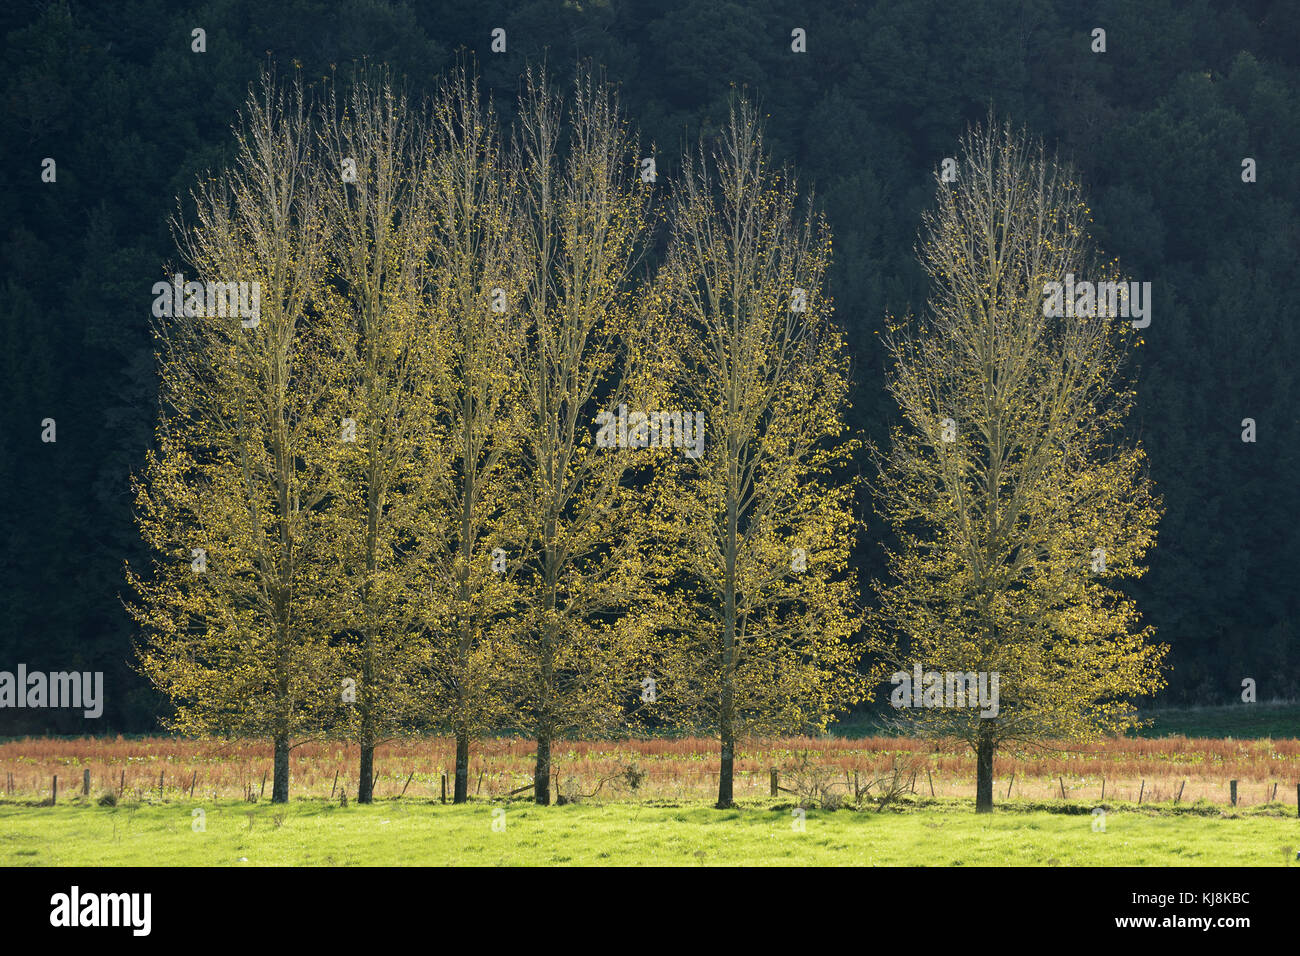 backlighting gives a golden glow to poplars along a fence line - Stock Image